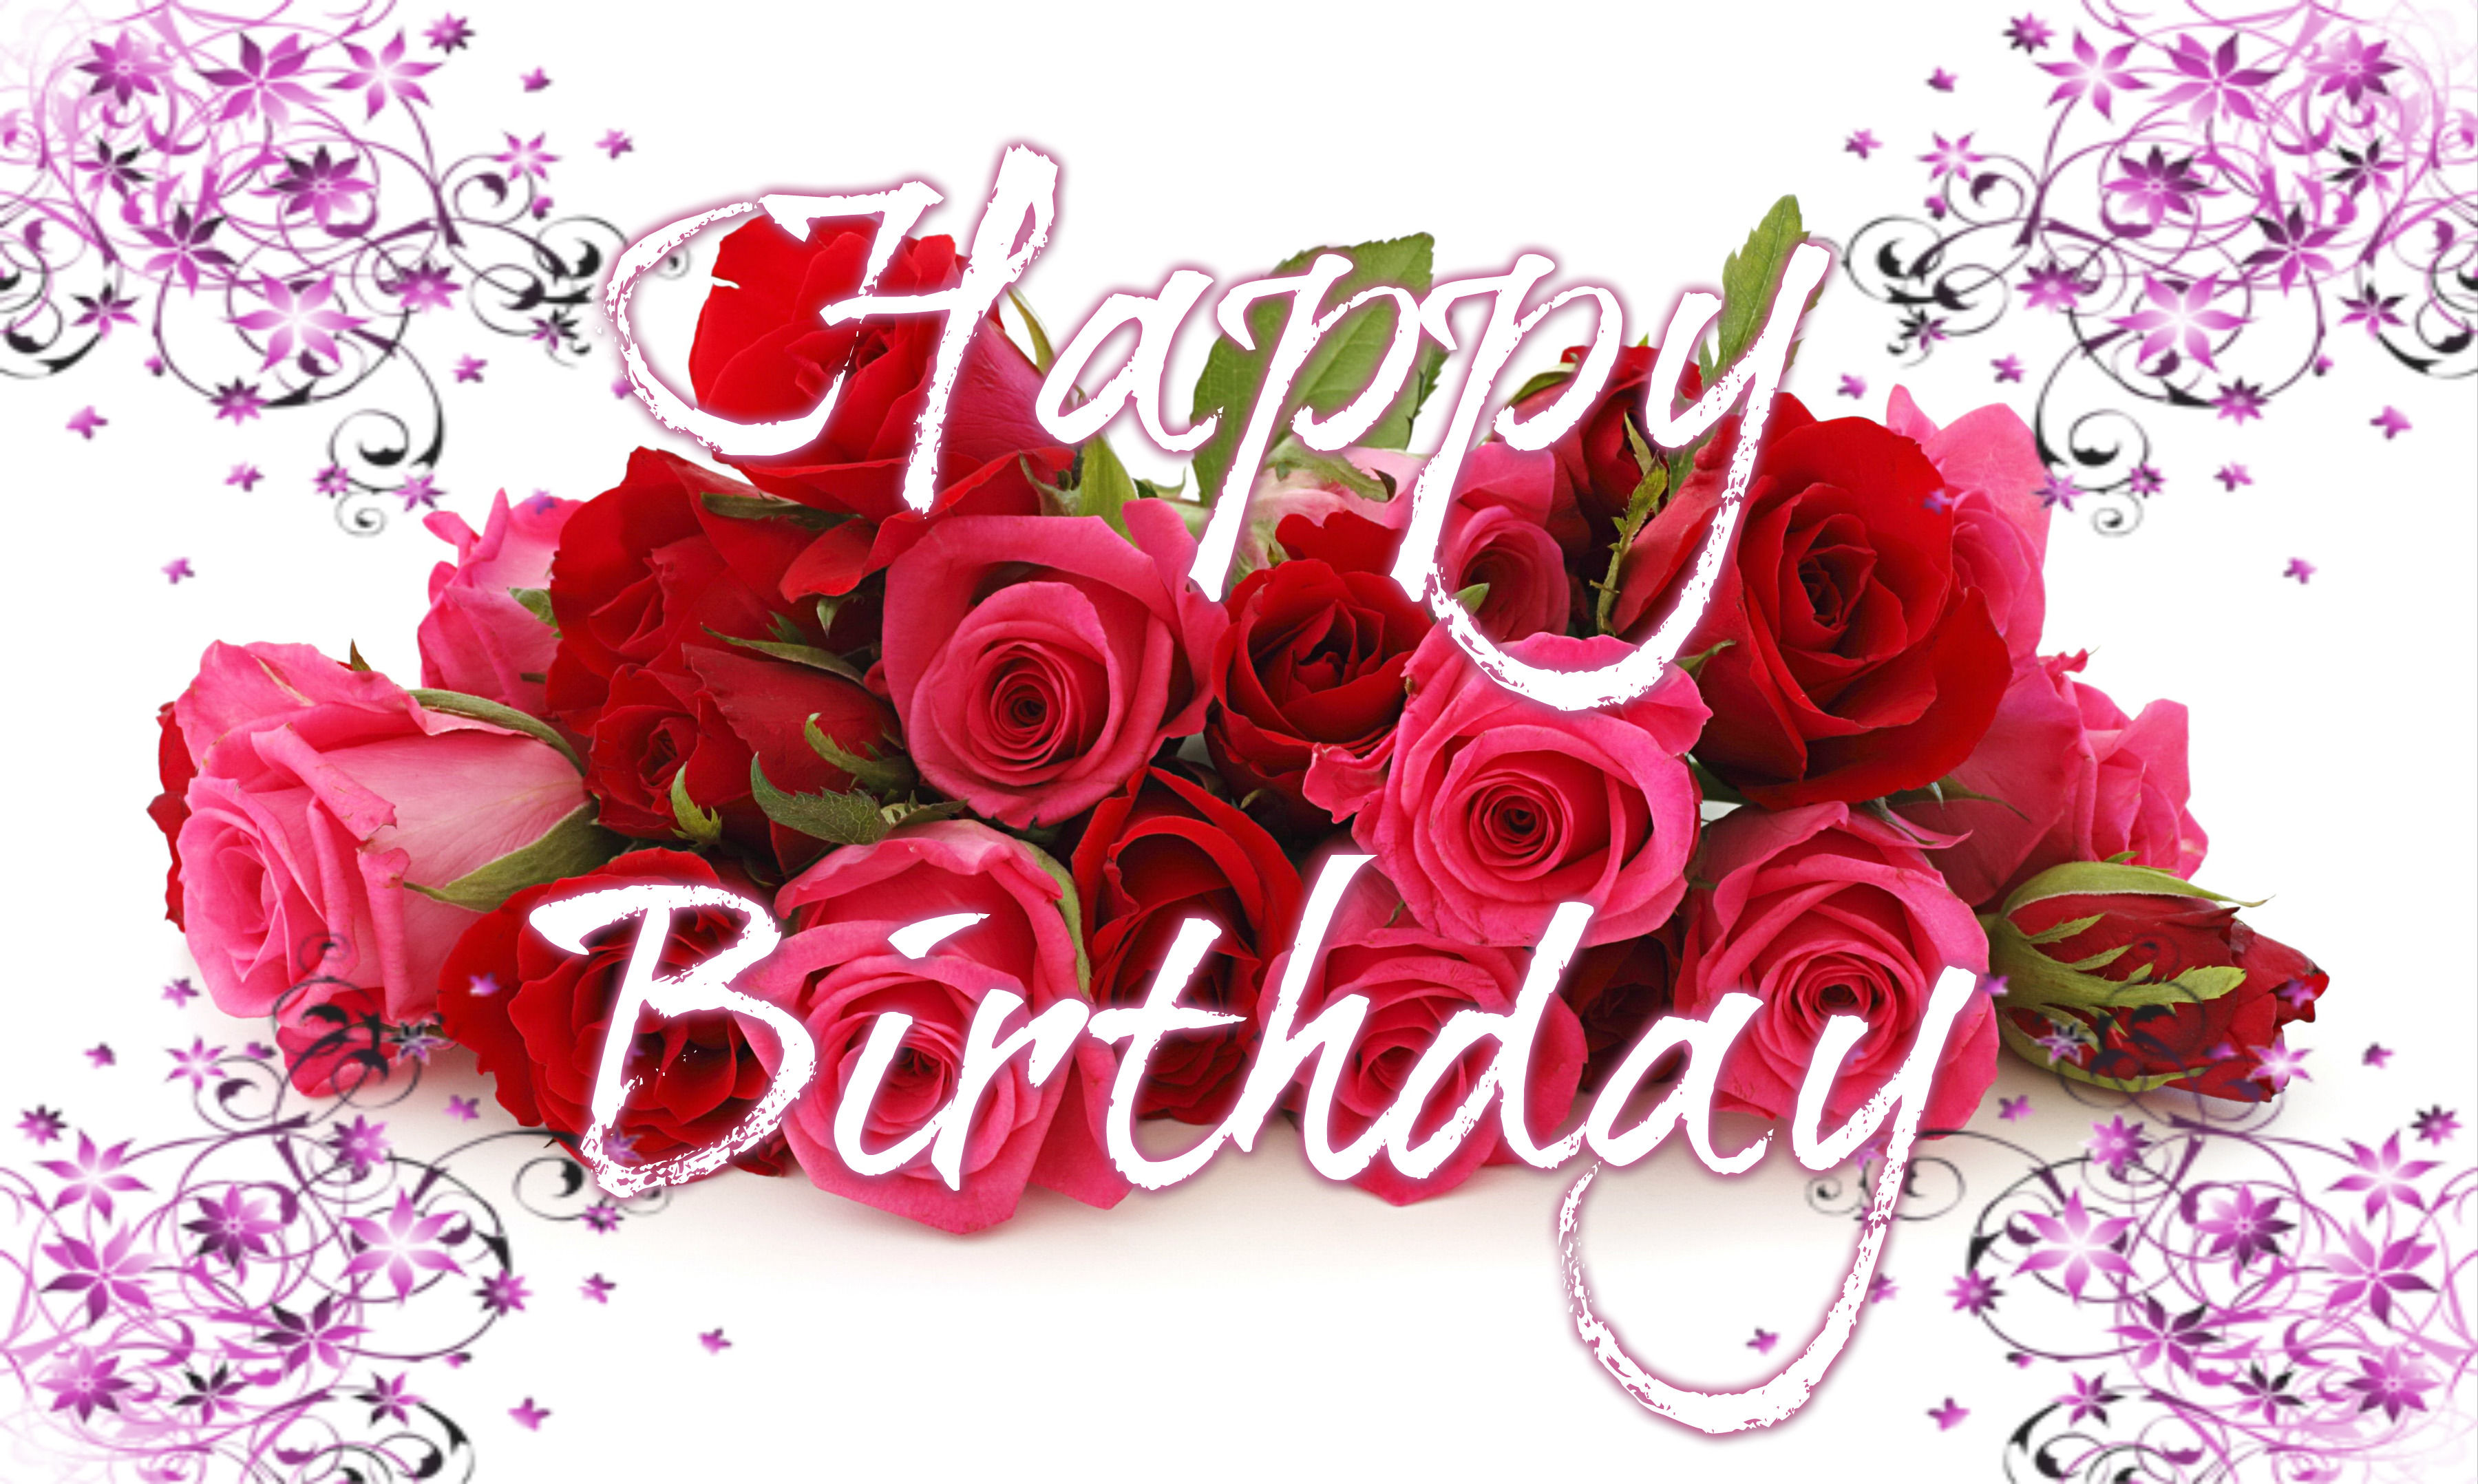 image birthday image ; 238518-Happy-Birthday-2